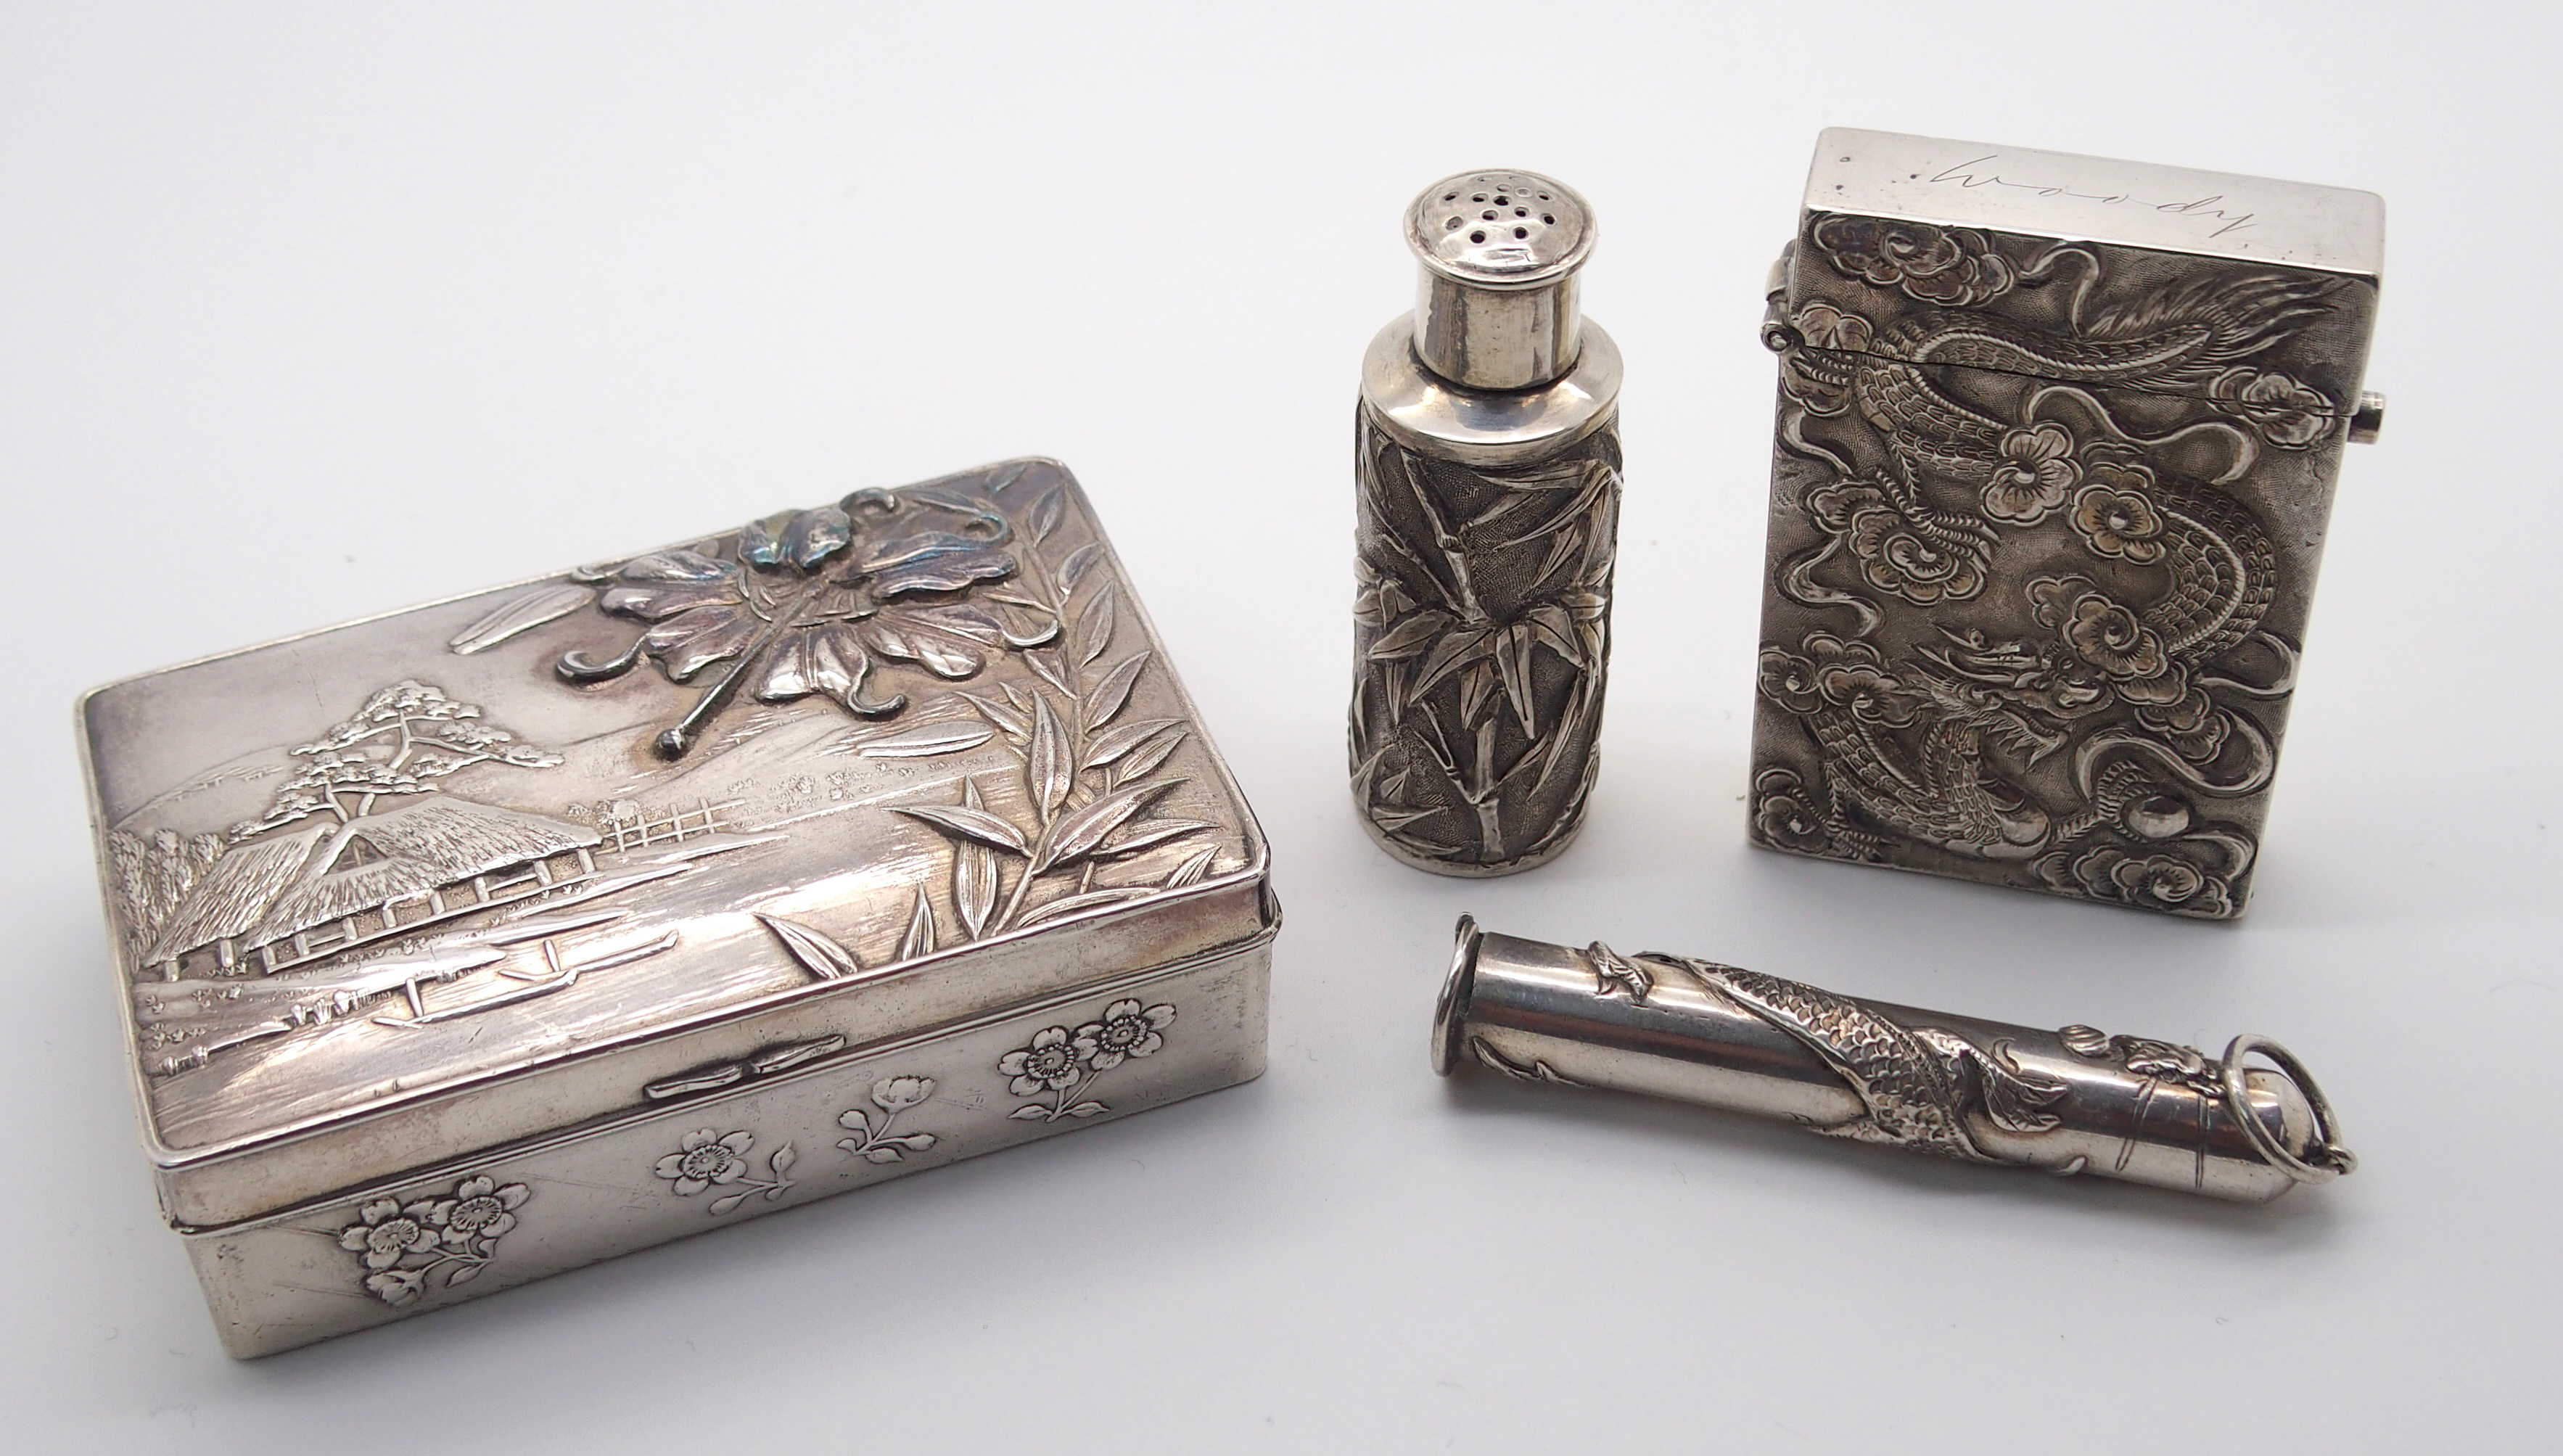 Lot 6 - A CHINESE SILVER PEPPER CASTOR decorated with bamboo, stamped WH 90, 5.5cm high, white metal